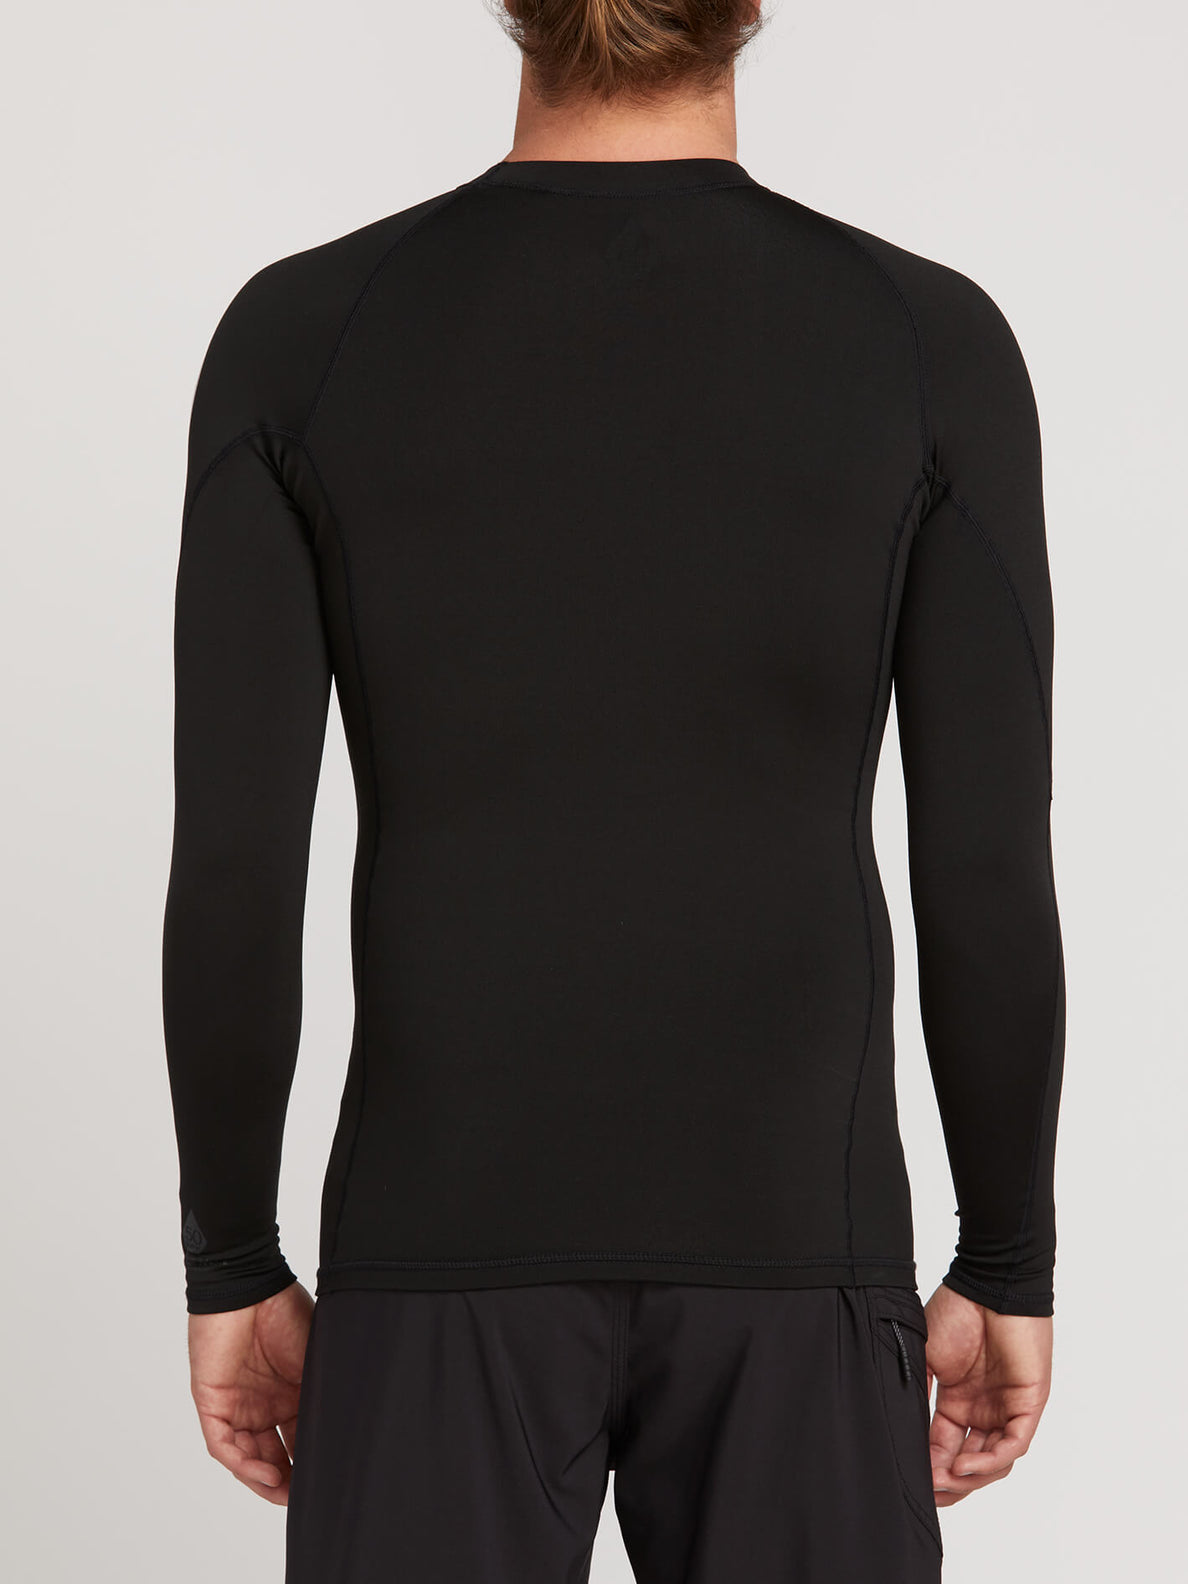 Hotainer Long Sleeve Rashguard In Black, Back View